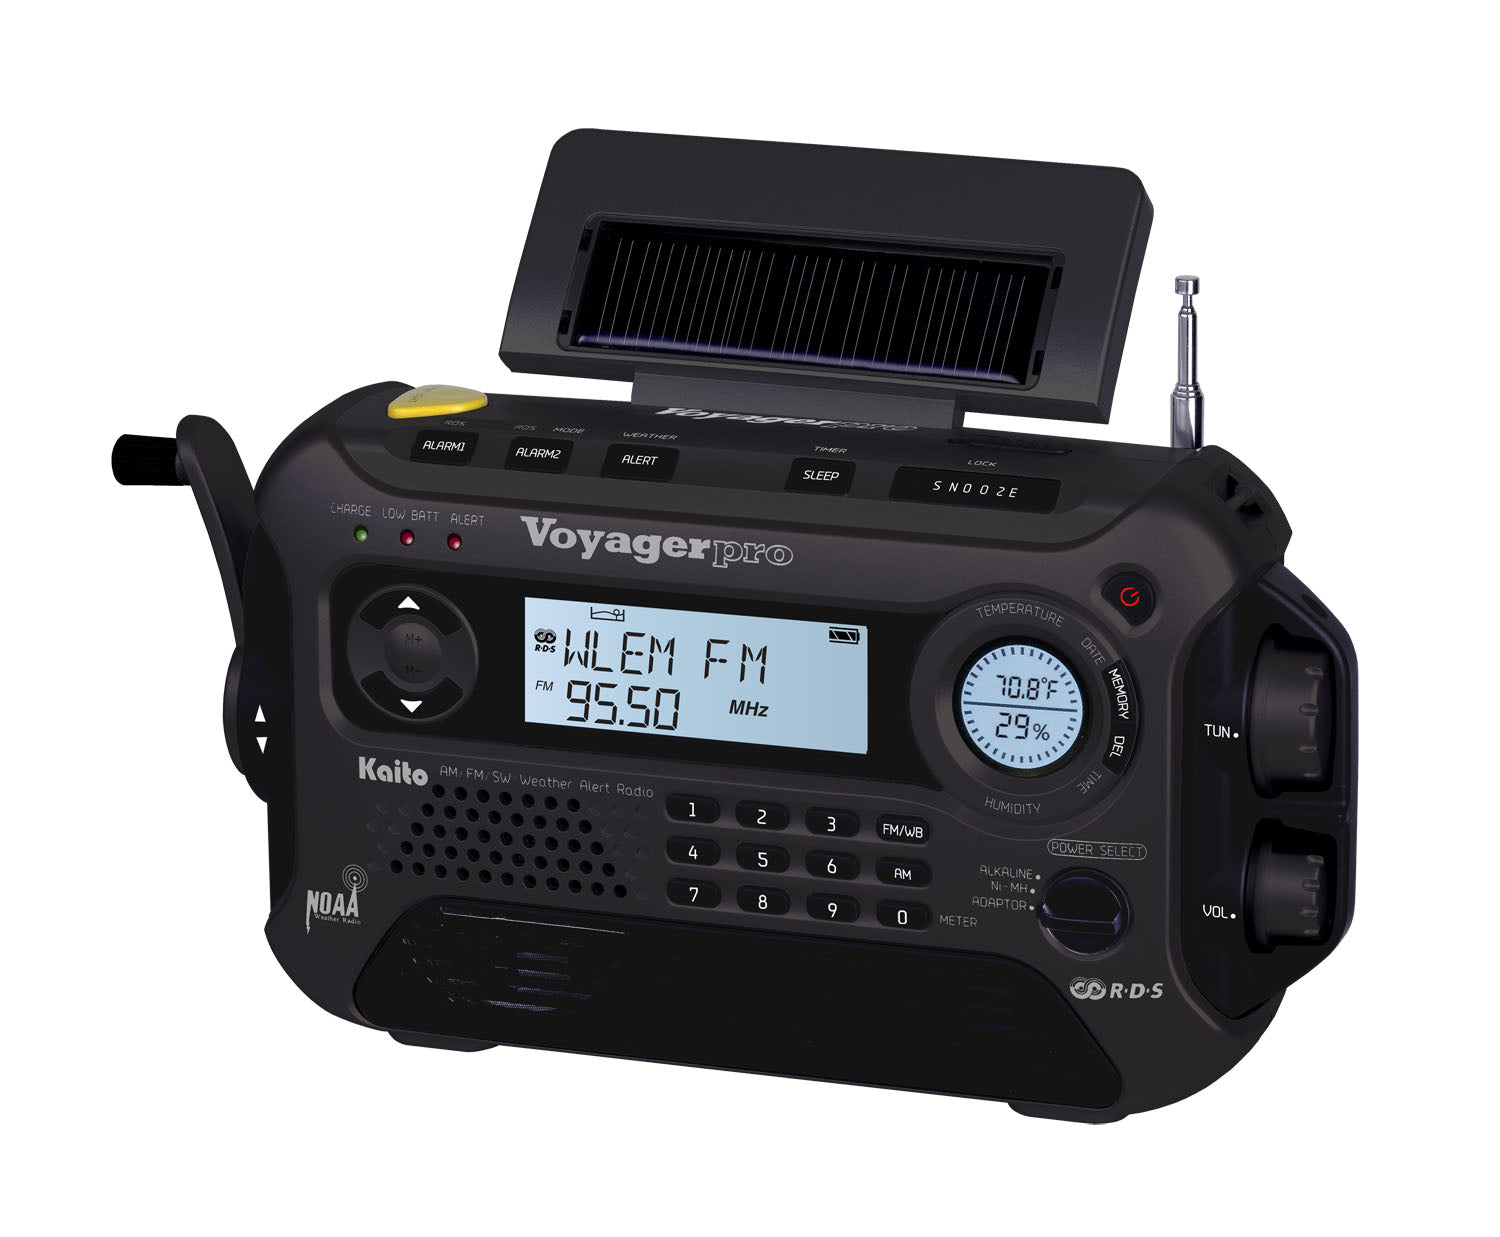 Voyager Pro' Digital Solar & Crank Power Rechargeable Radio